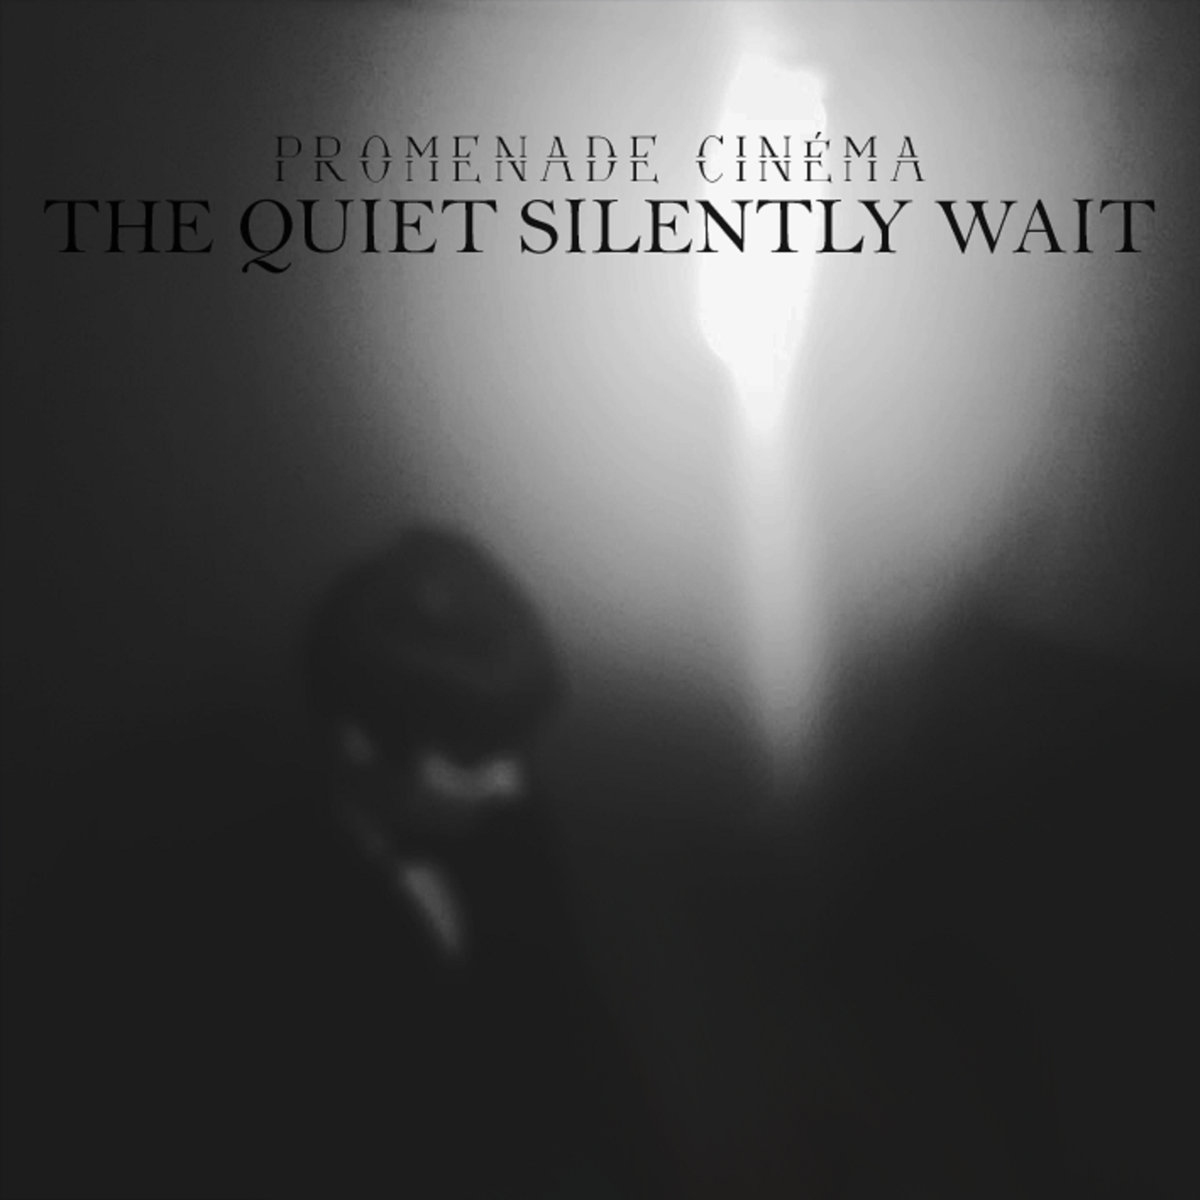 Promenade Cinema, The Quiet Silently Wait